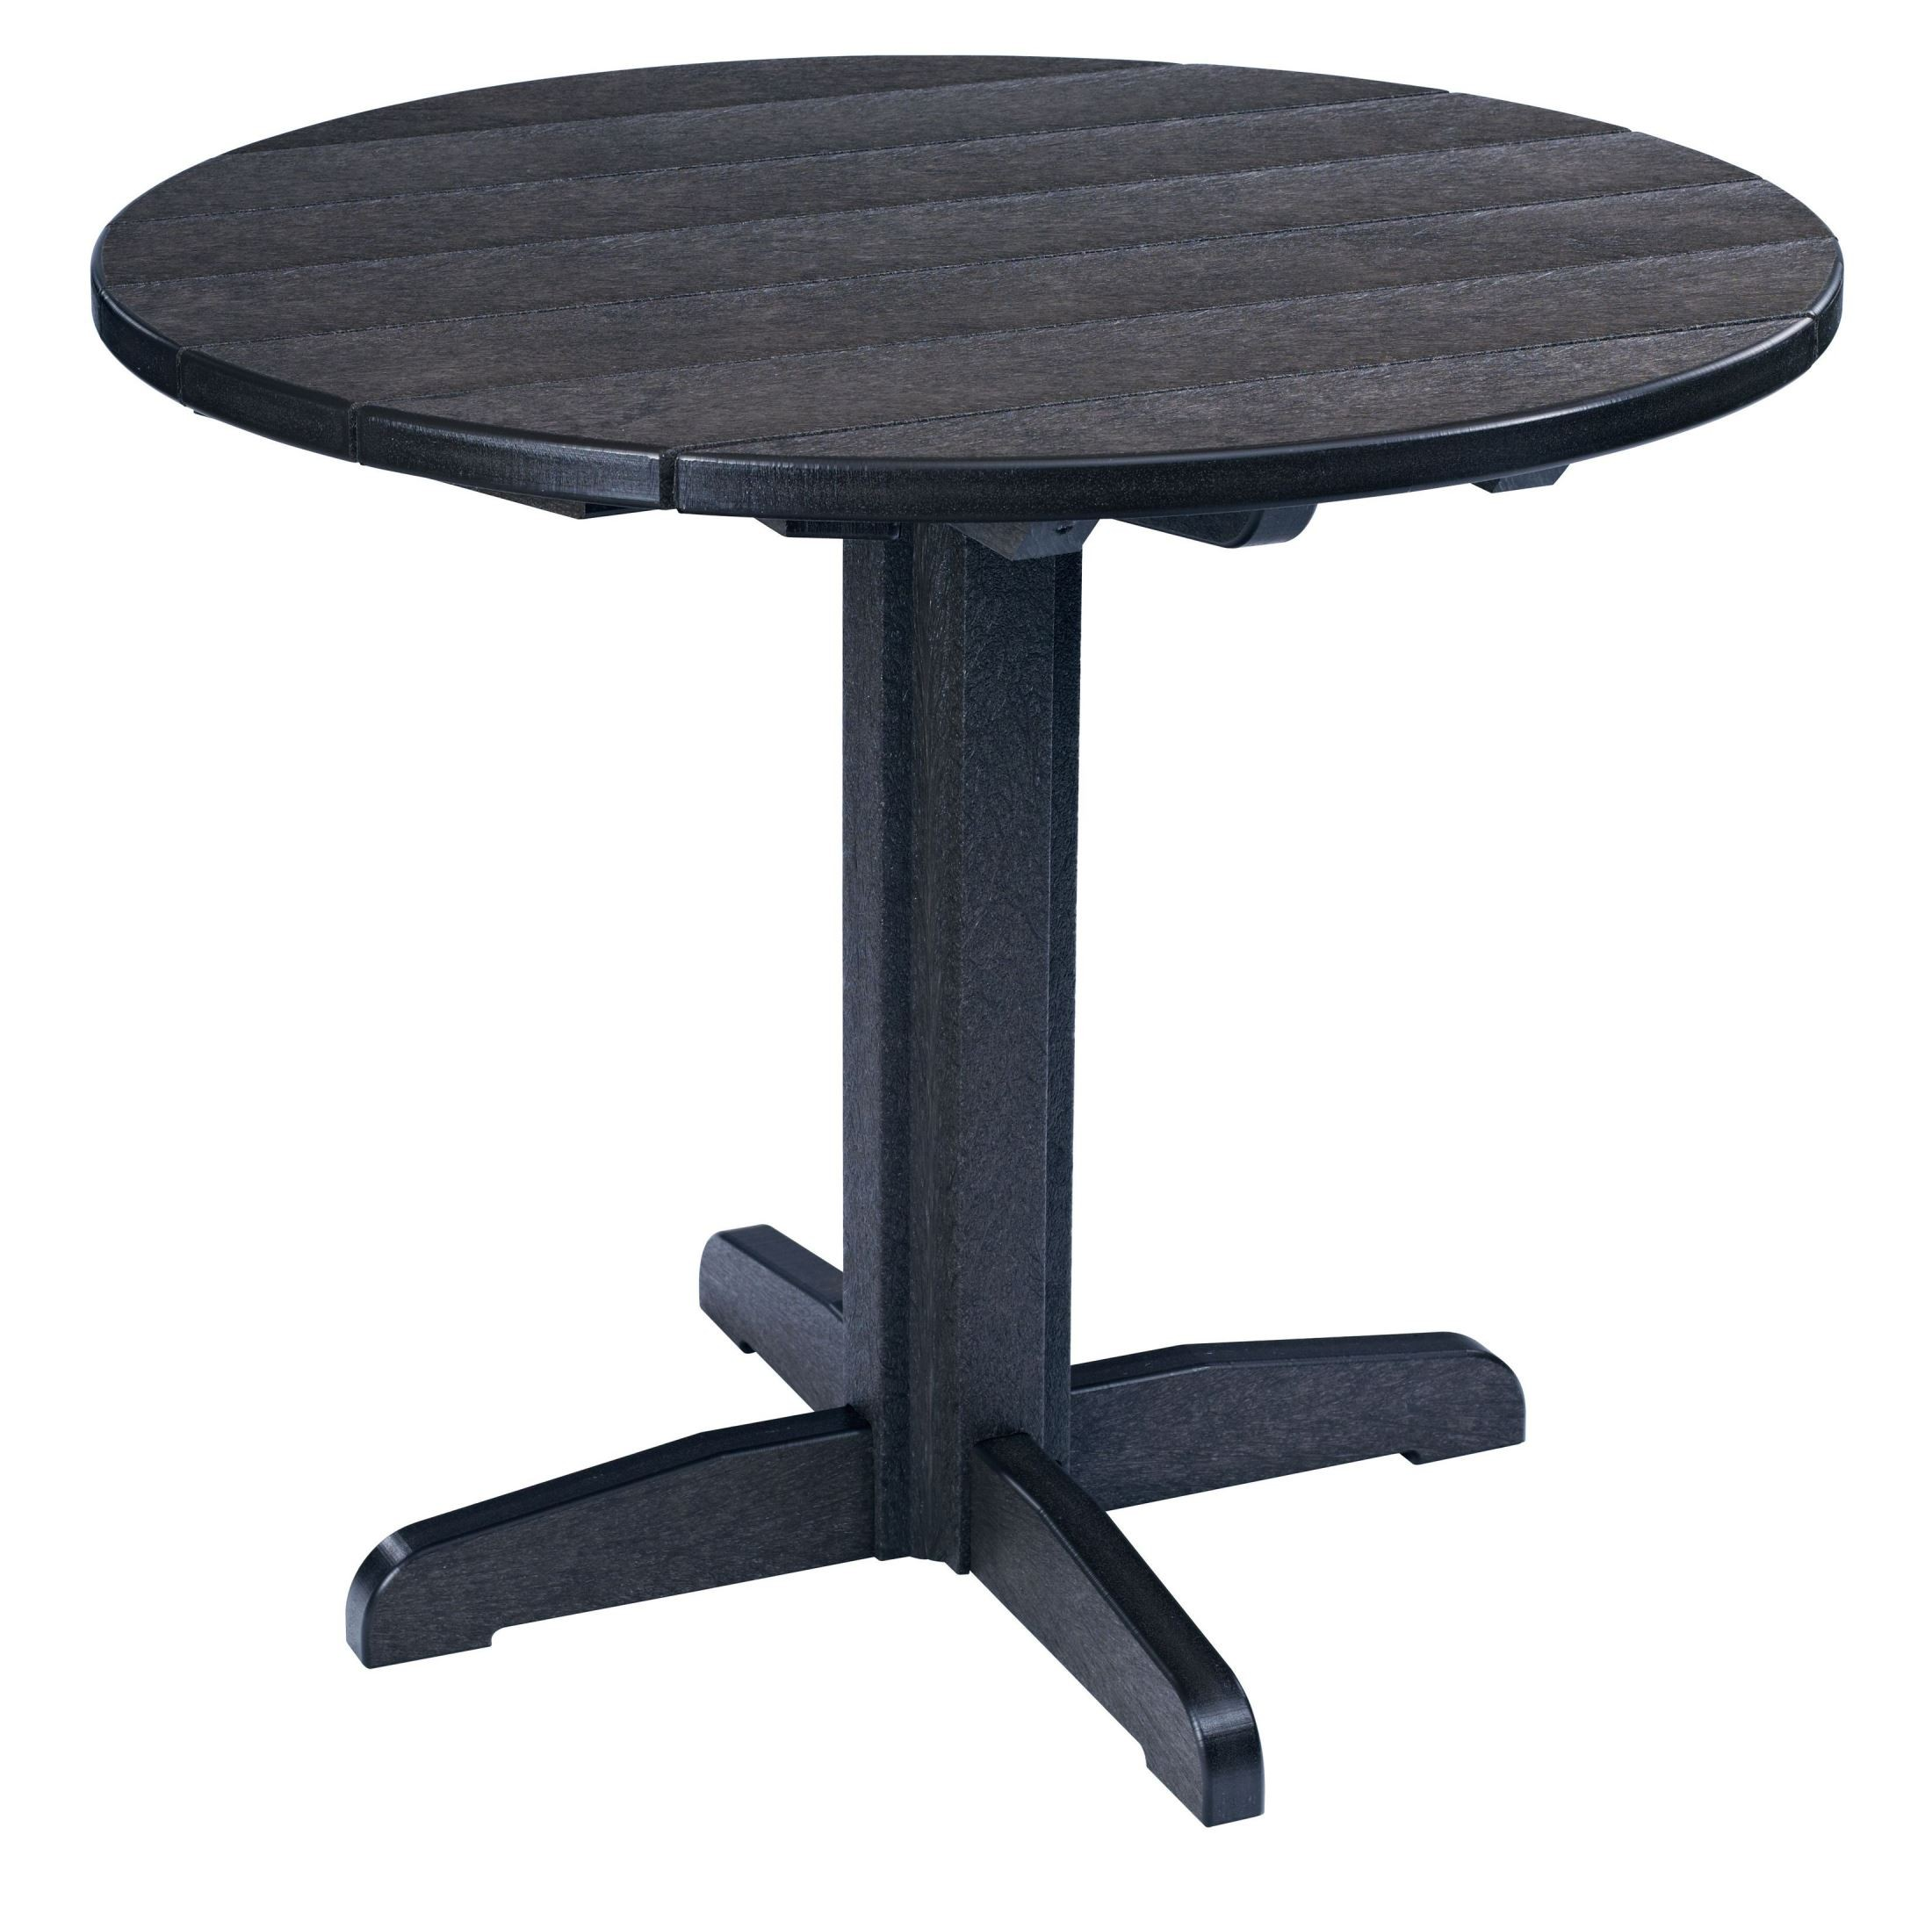 Generations Black 37 Round Pedestal Dining Table From CR Plastic